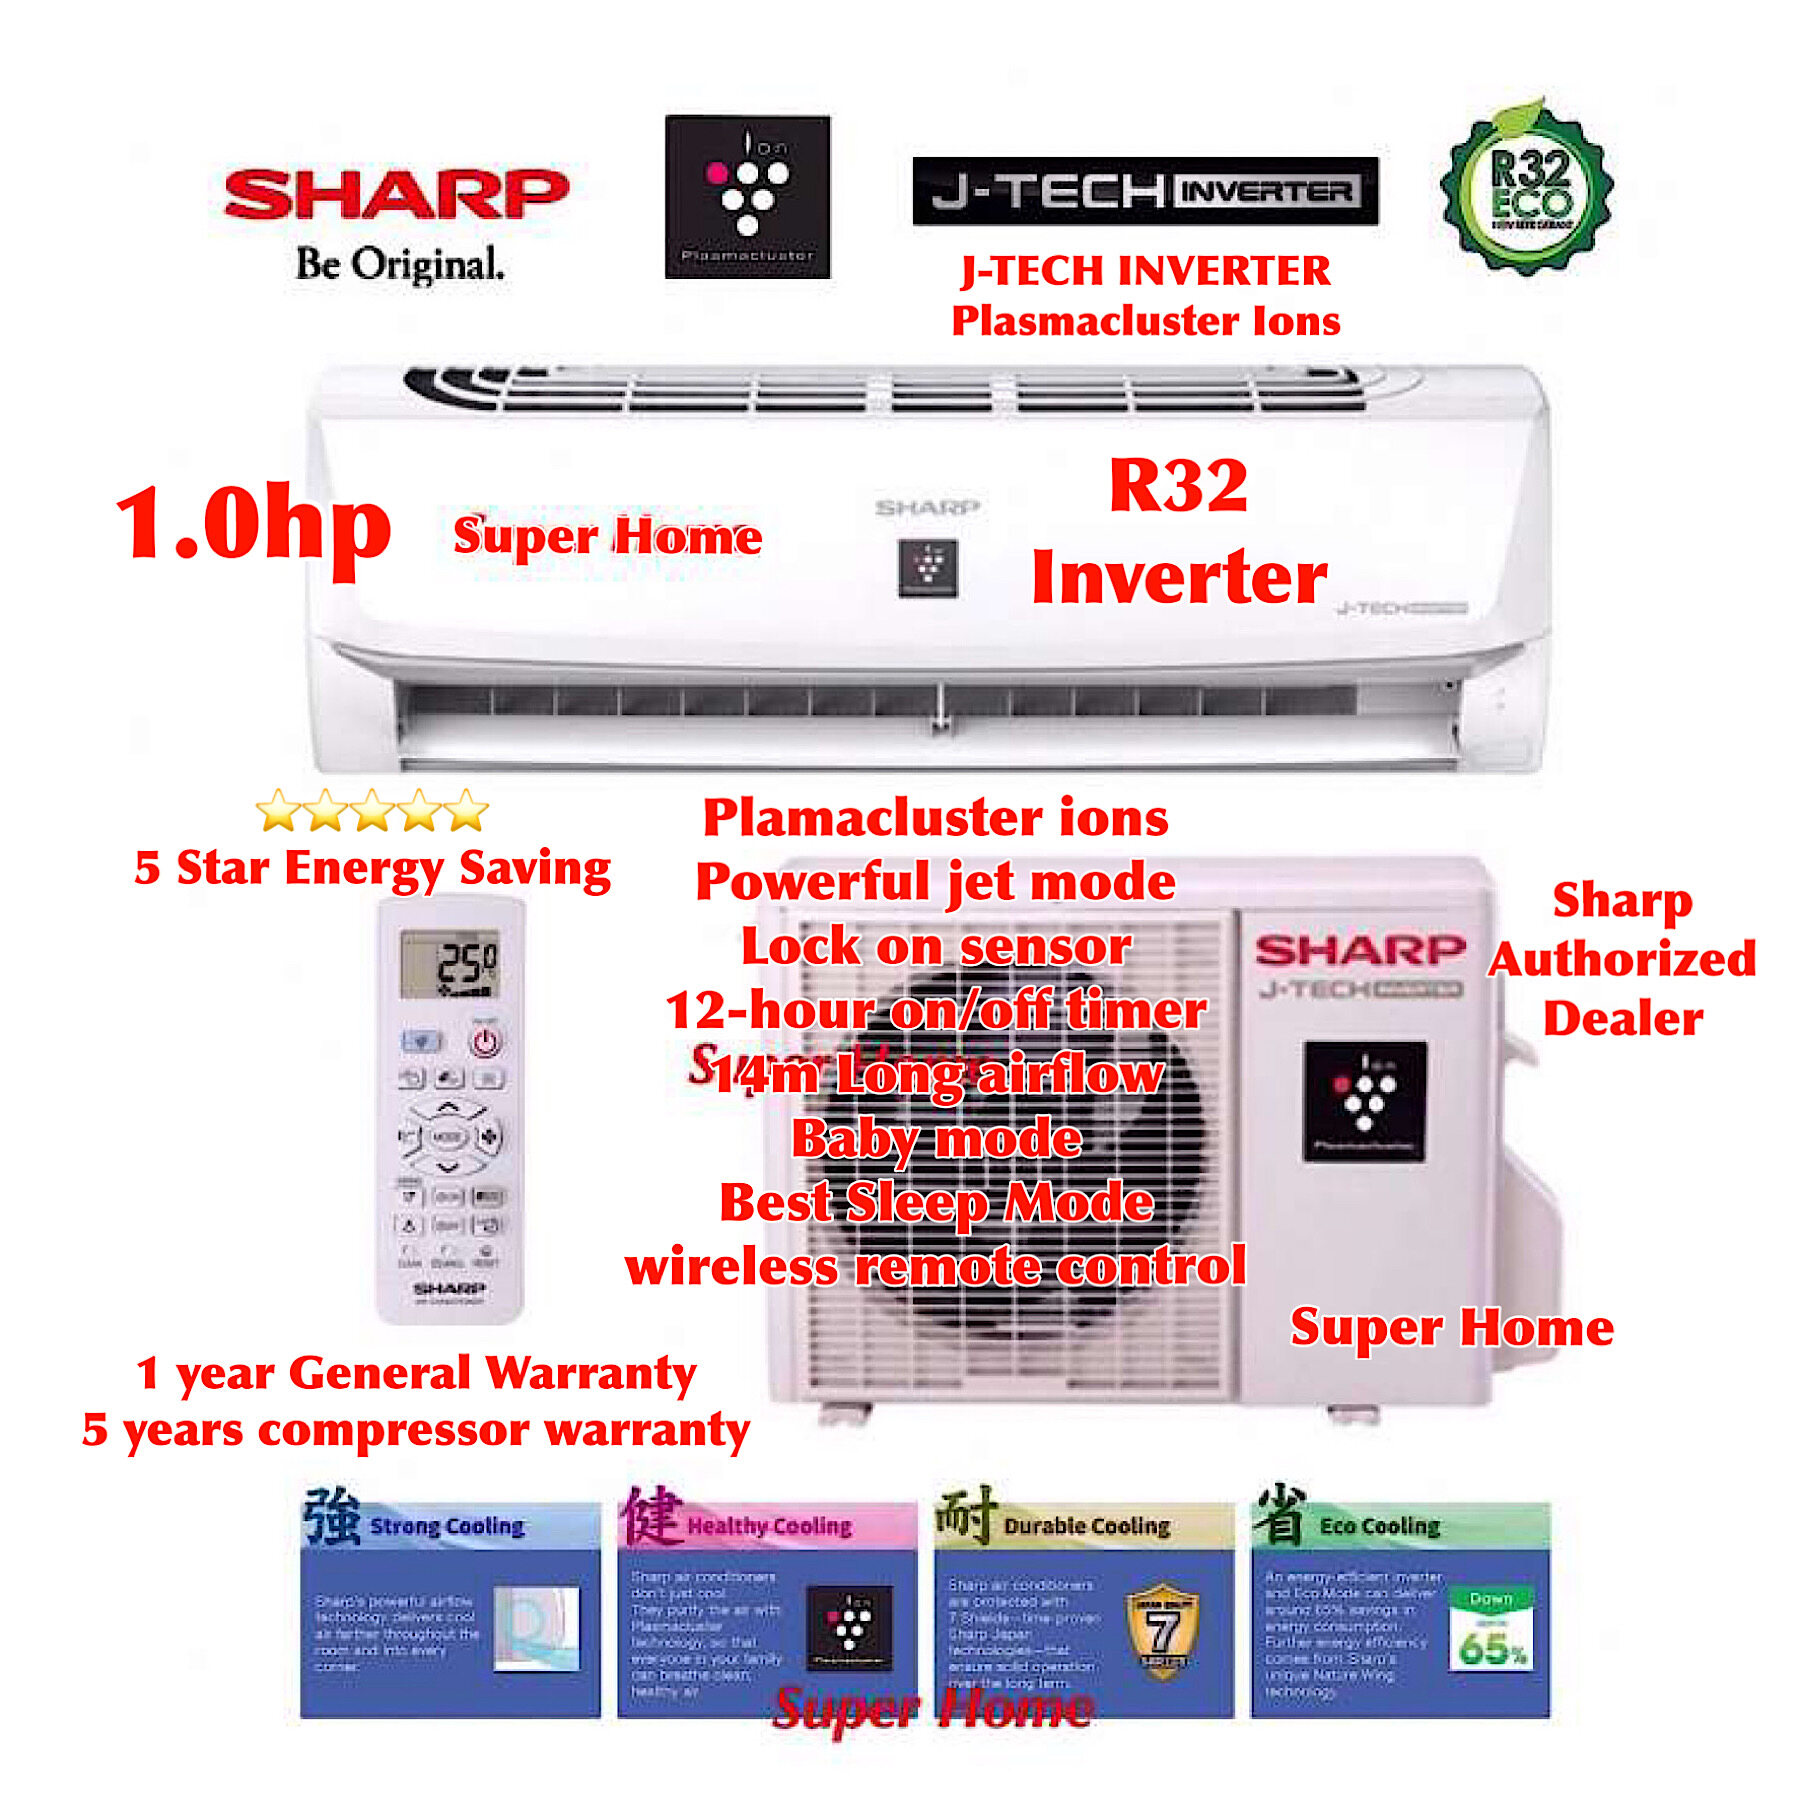 Sharp J-Tech Inverter Plasmacluster Ions AHXP10WMD & AUX10WMD 1.0hp Inverter Air-Conditioner - R32 Aircond - 5 star Energy Saving